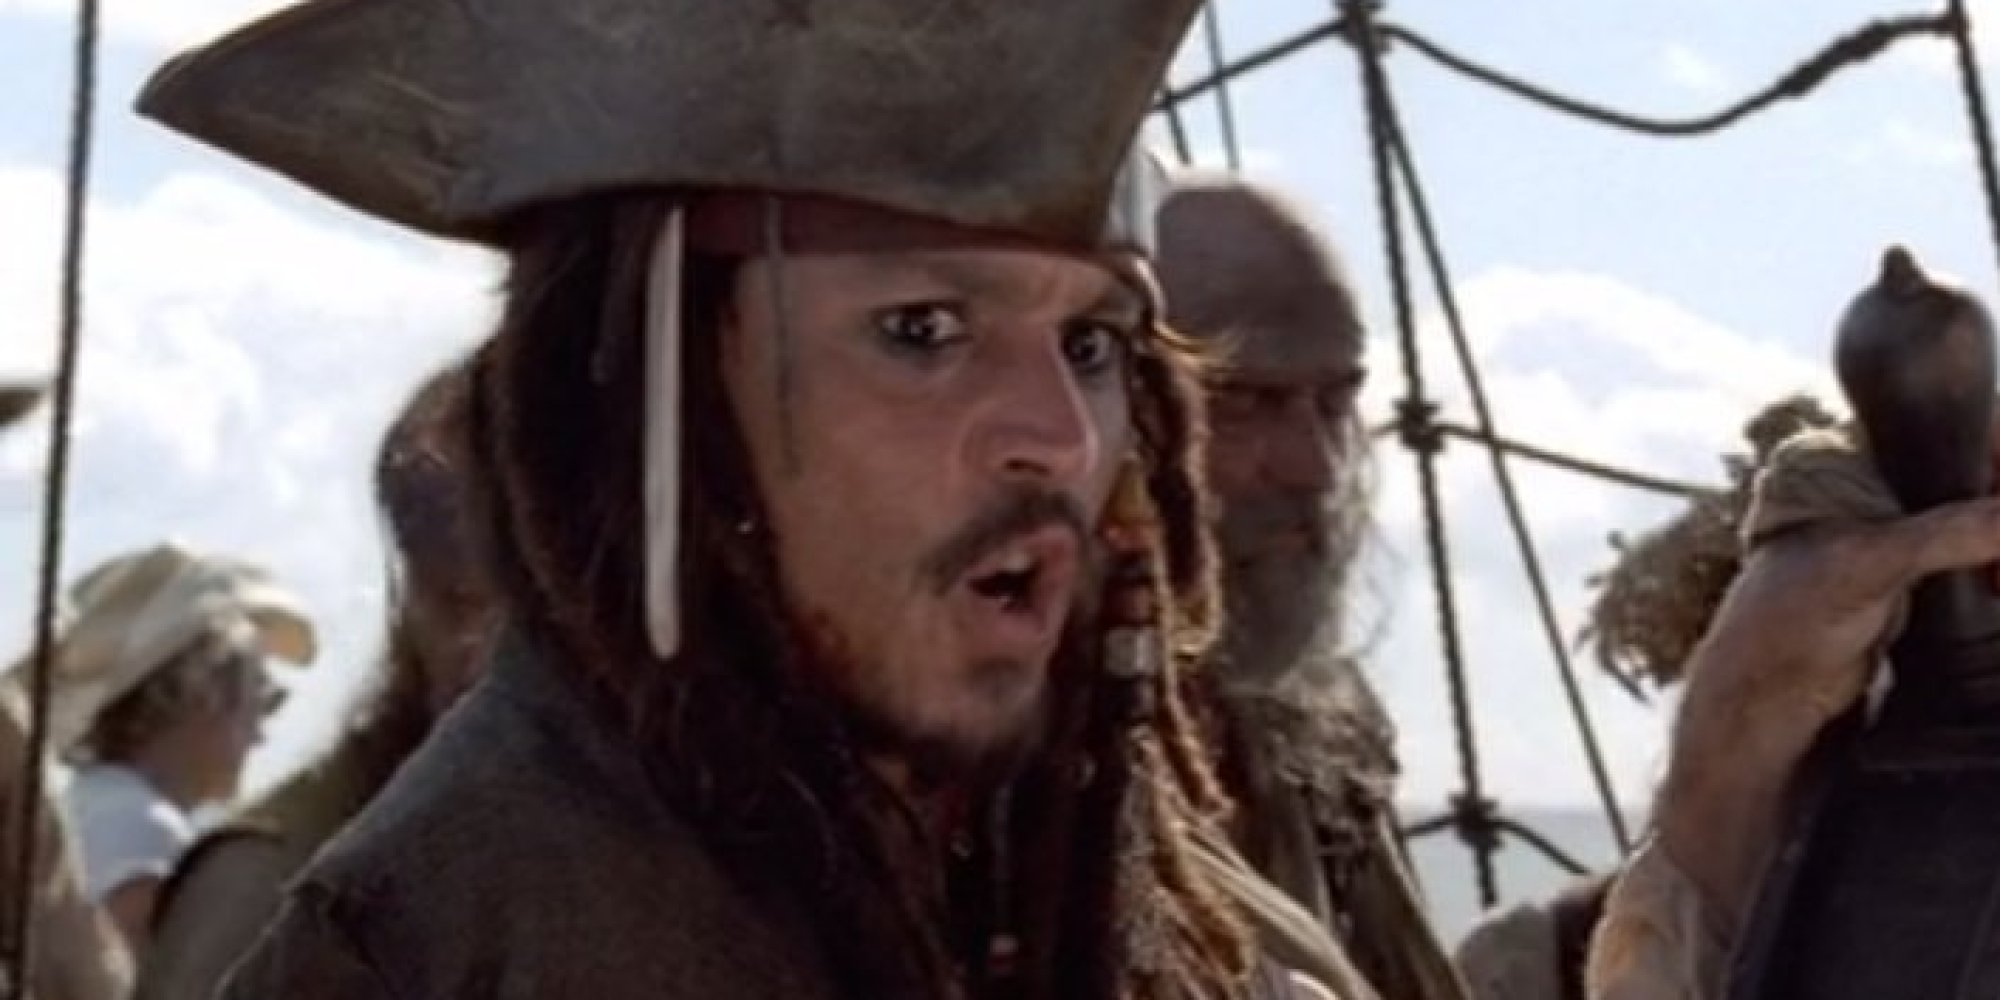 The Pirate Filme 11 Ridiculous Mistakes That Will Ruin Your Favorite Movies